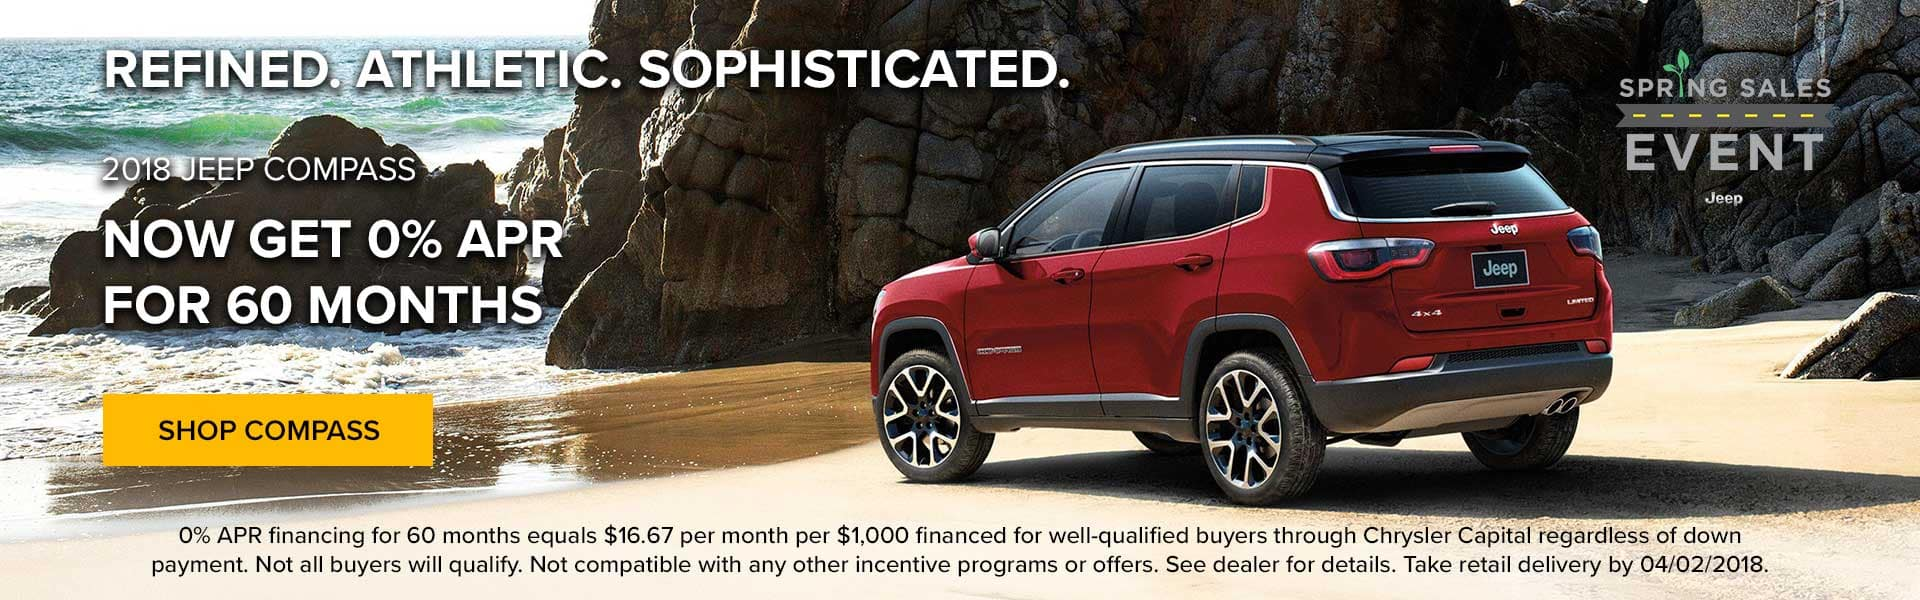 Now get 0% APR up to 60 months on a new Jeep Compass at Newberg Jeep Ram Dodge